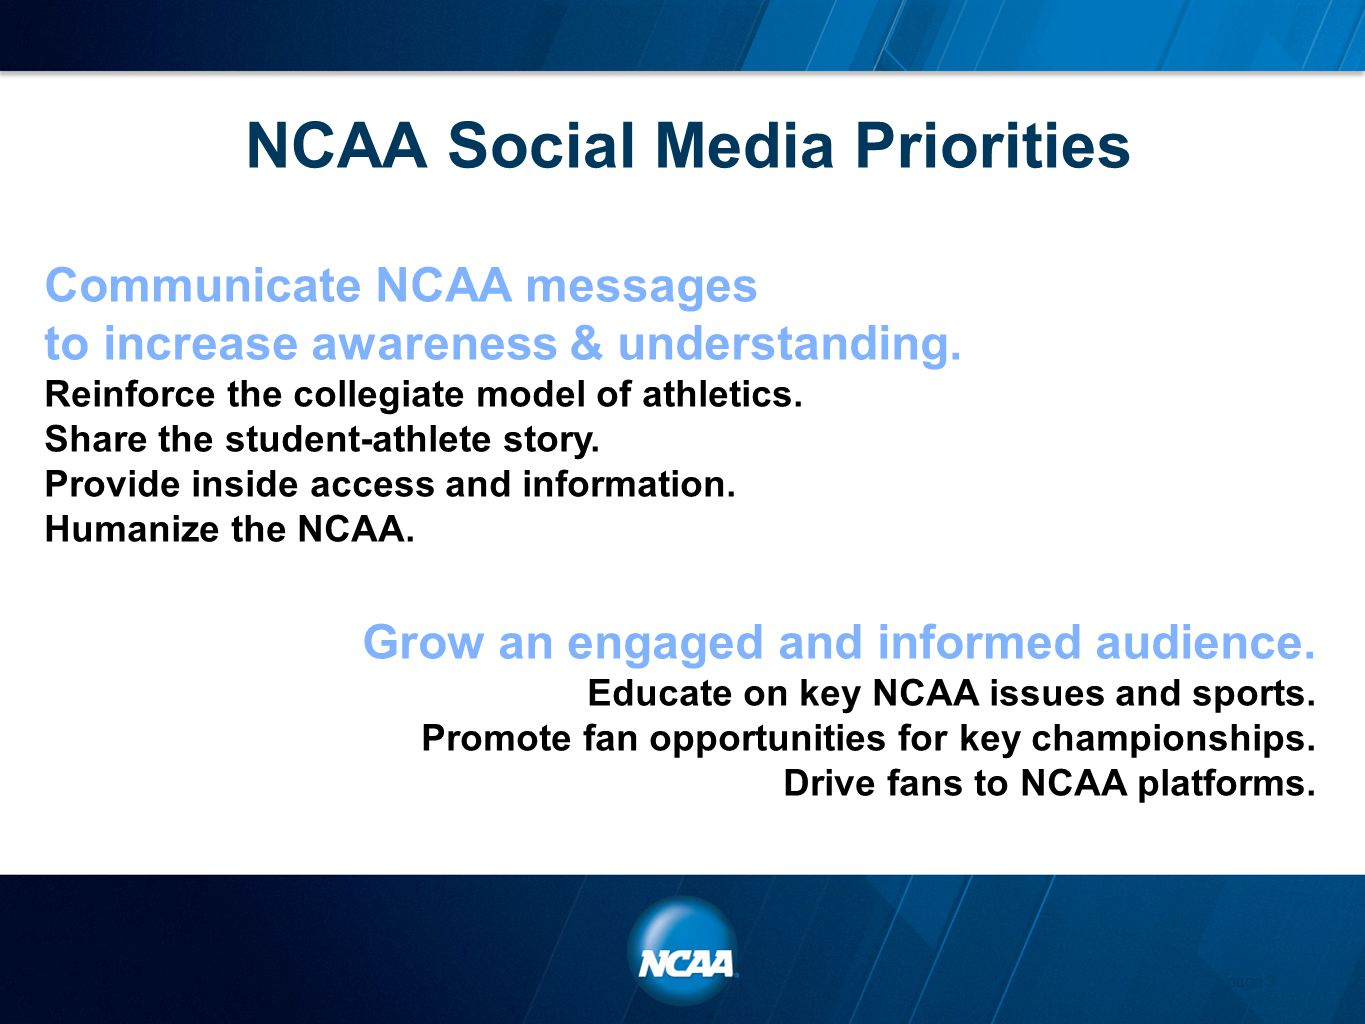 NCAA Social Media Priorities page 3 Communicate NCAA messages to increase awareness & understanding. Reinforce the collegiate model of athletics. Shar